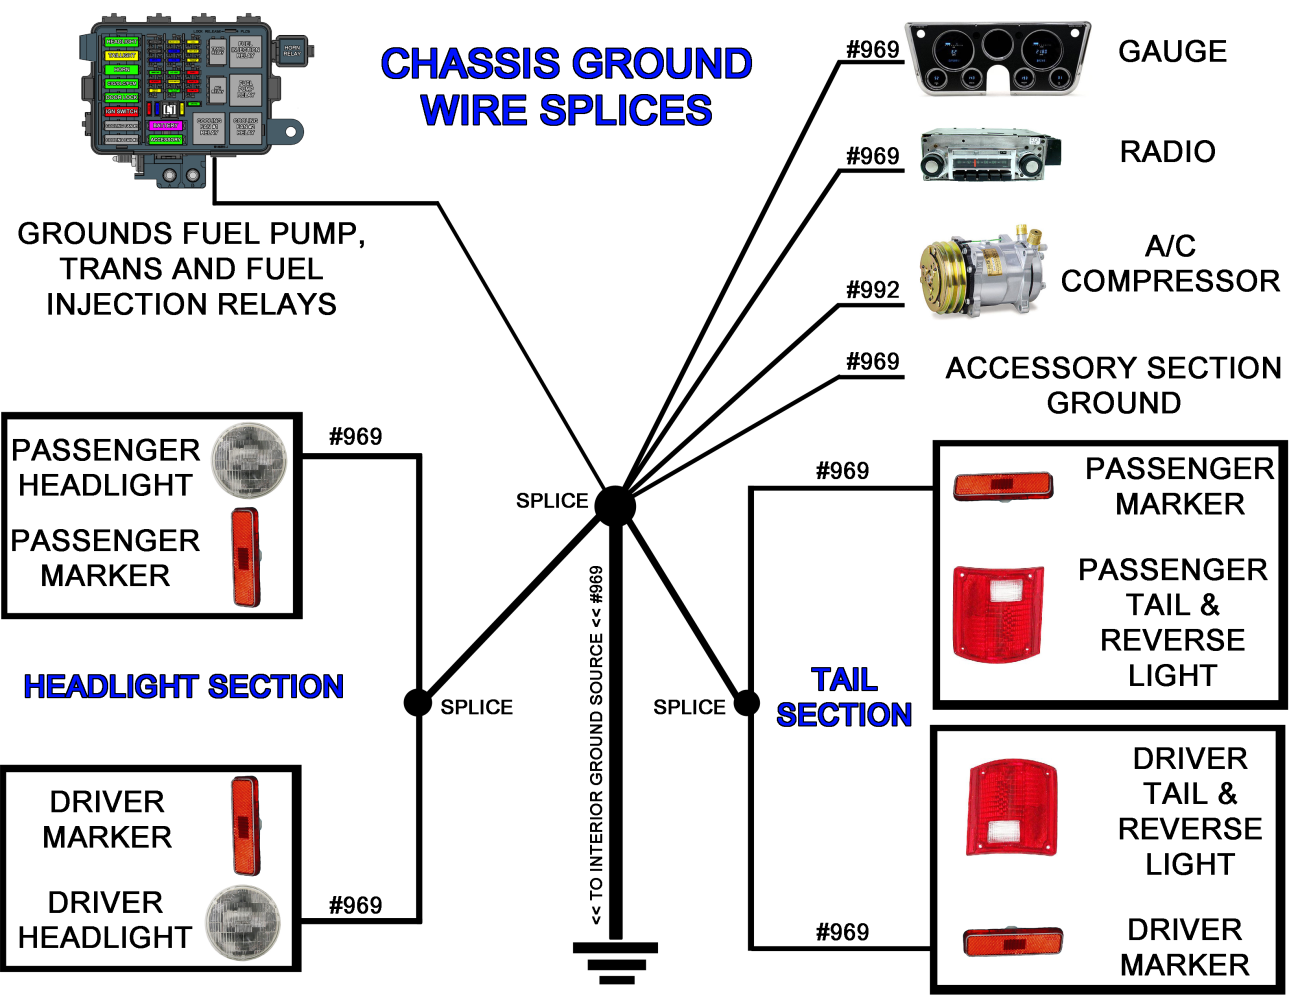 Wire Harness Installation Manual Part Pdf 911 H4 Headlight Wiring Diagram Get Free Image About Ground 3 Connect This 969 To A Clean Source